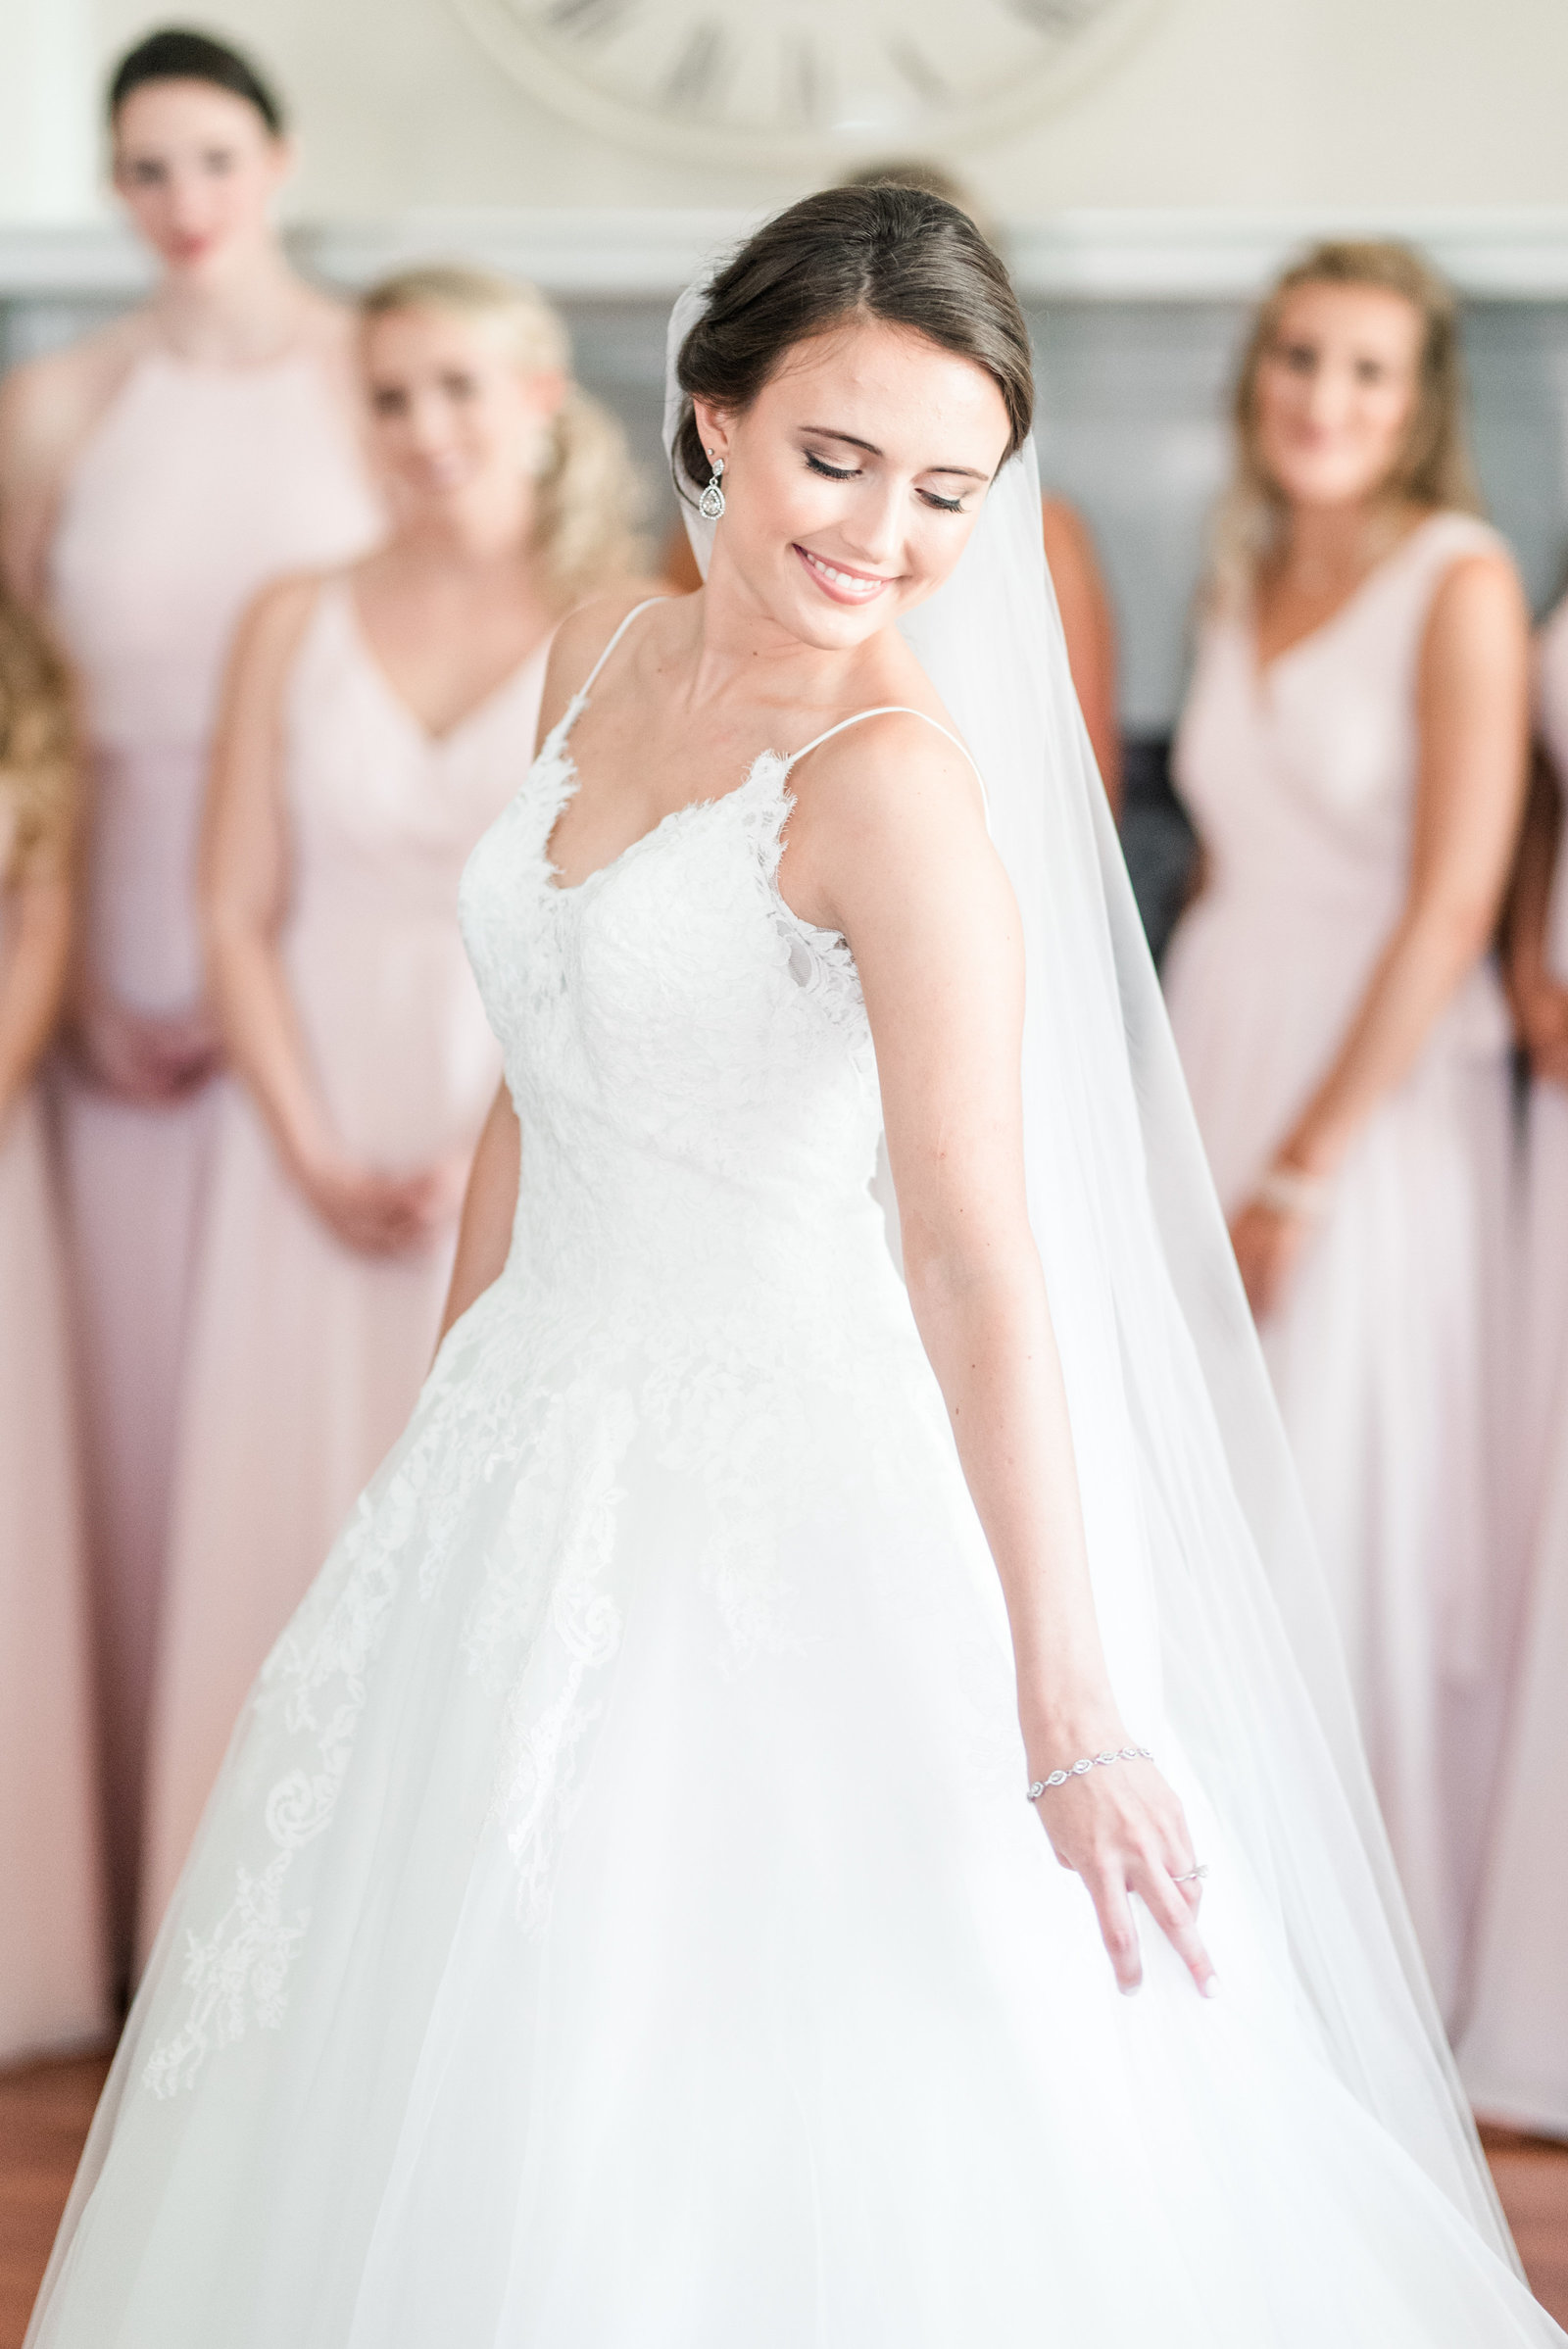 hampton-roads-virginia-wedding-blush-bridesmaids-dresses-photo124